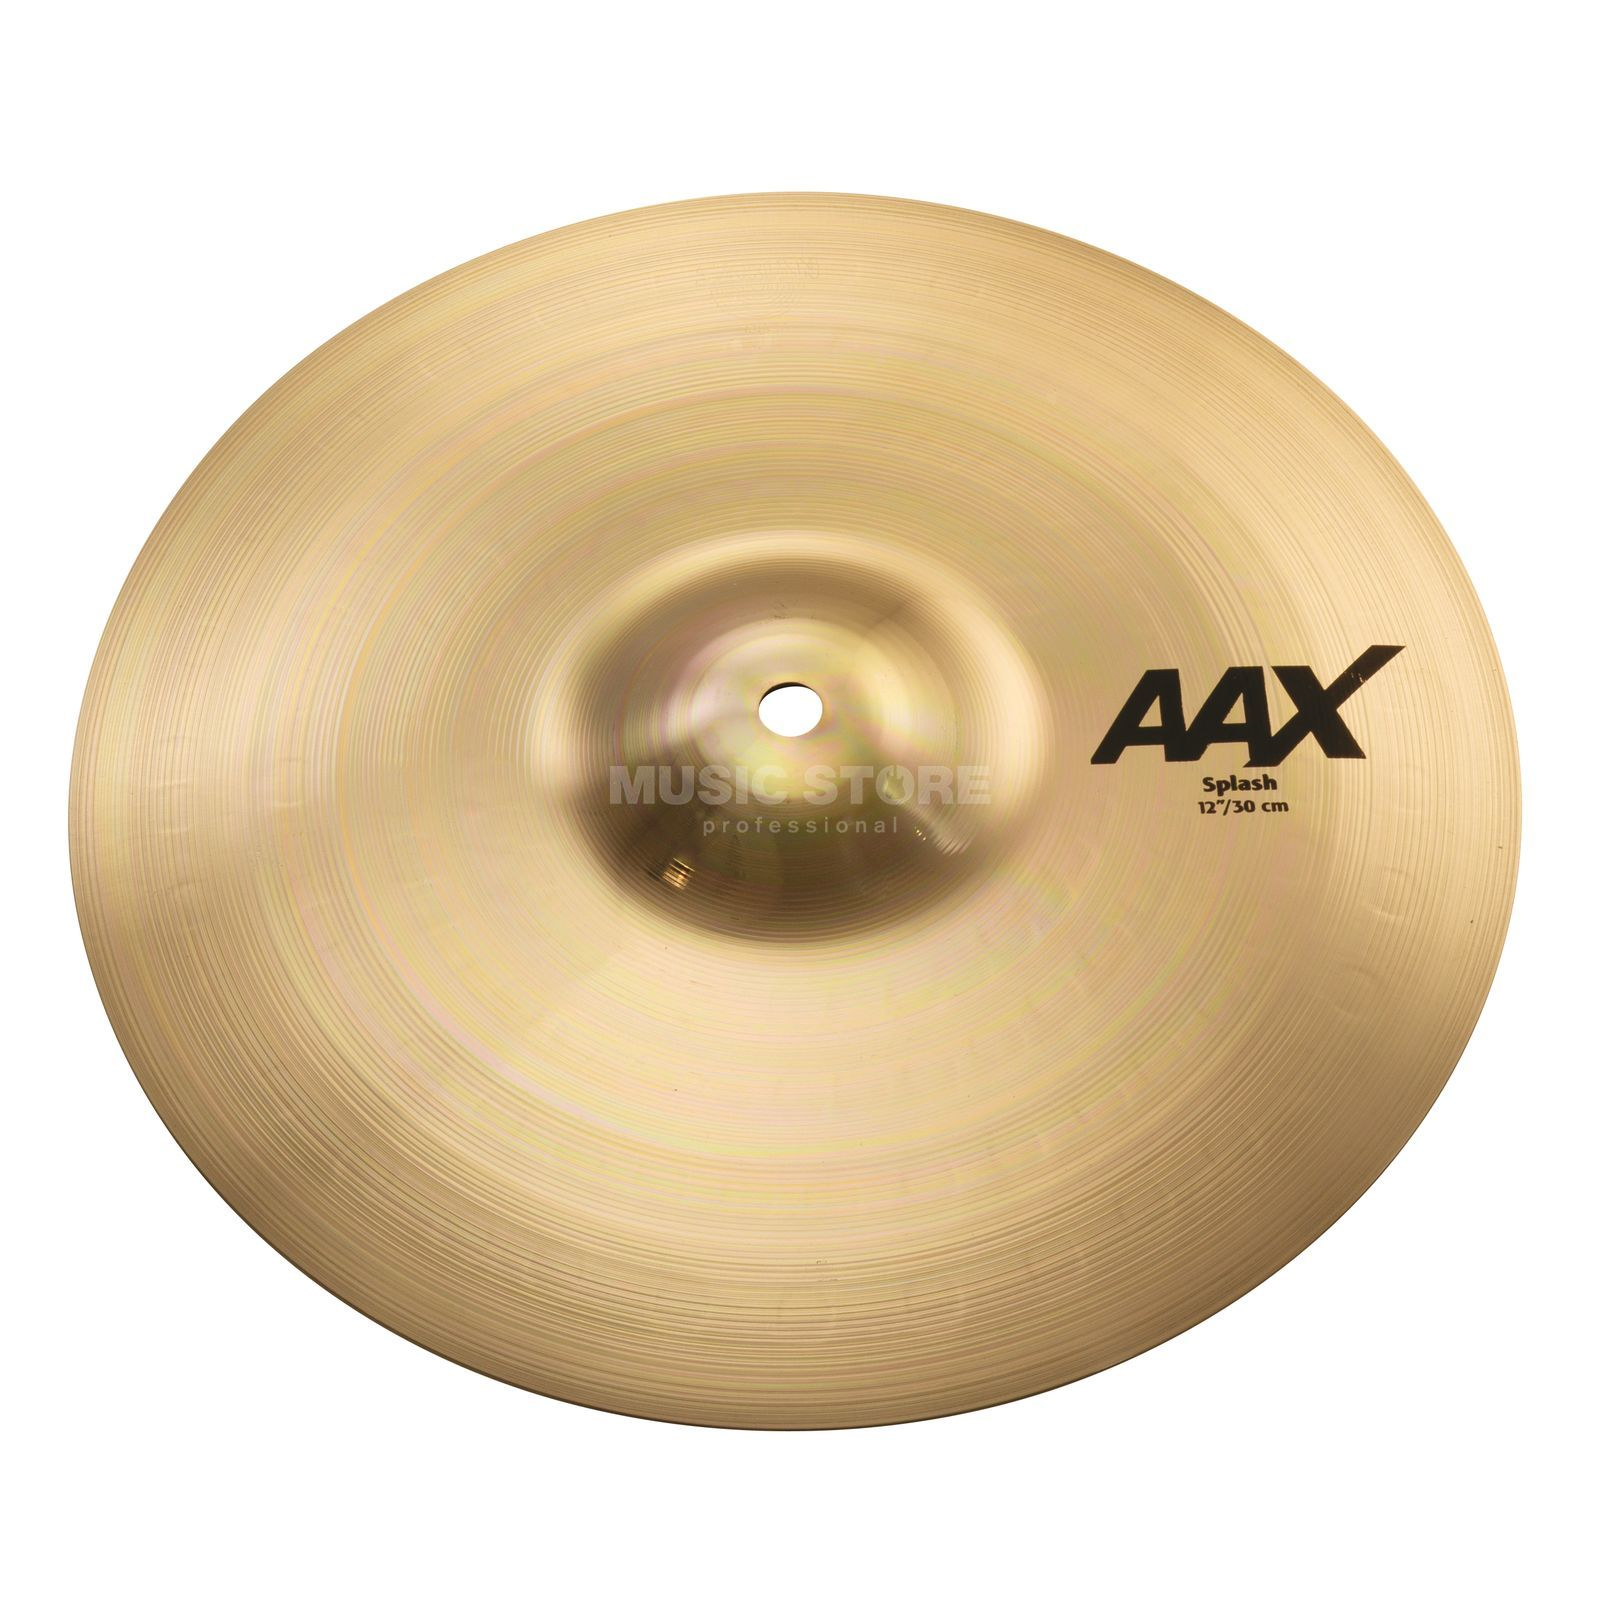 "Sabian AAX Splash 12"" Brilliant Finish Product Image"